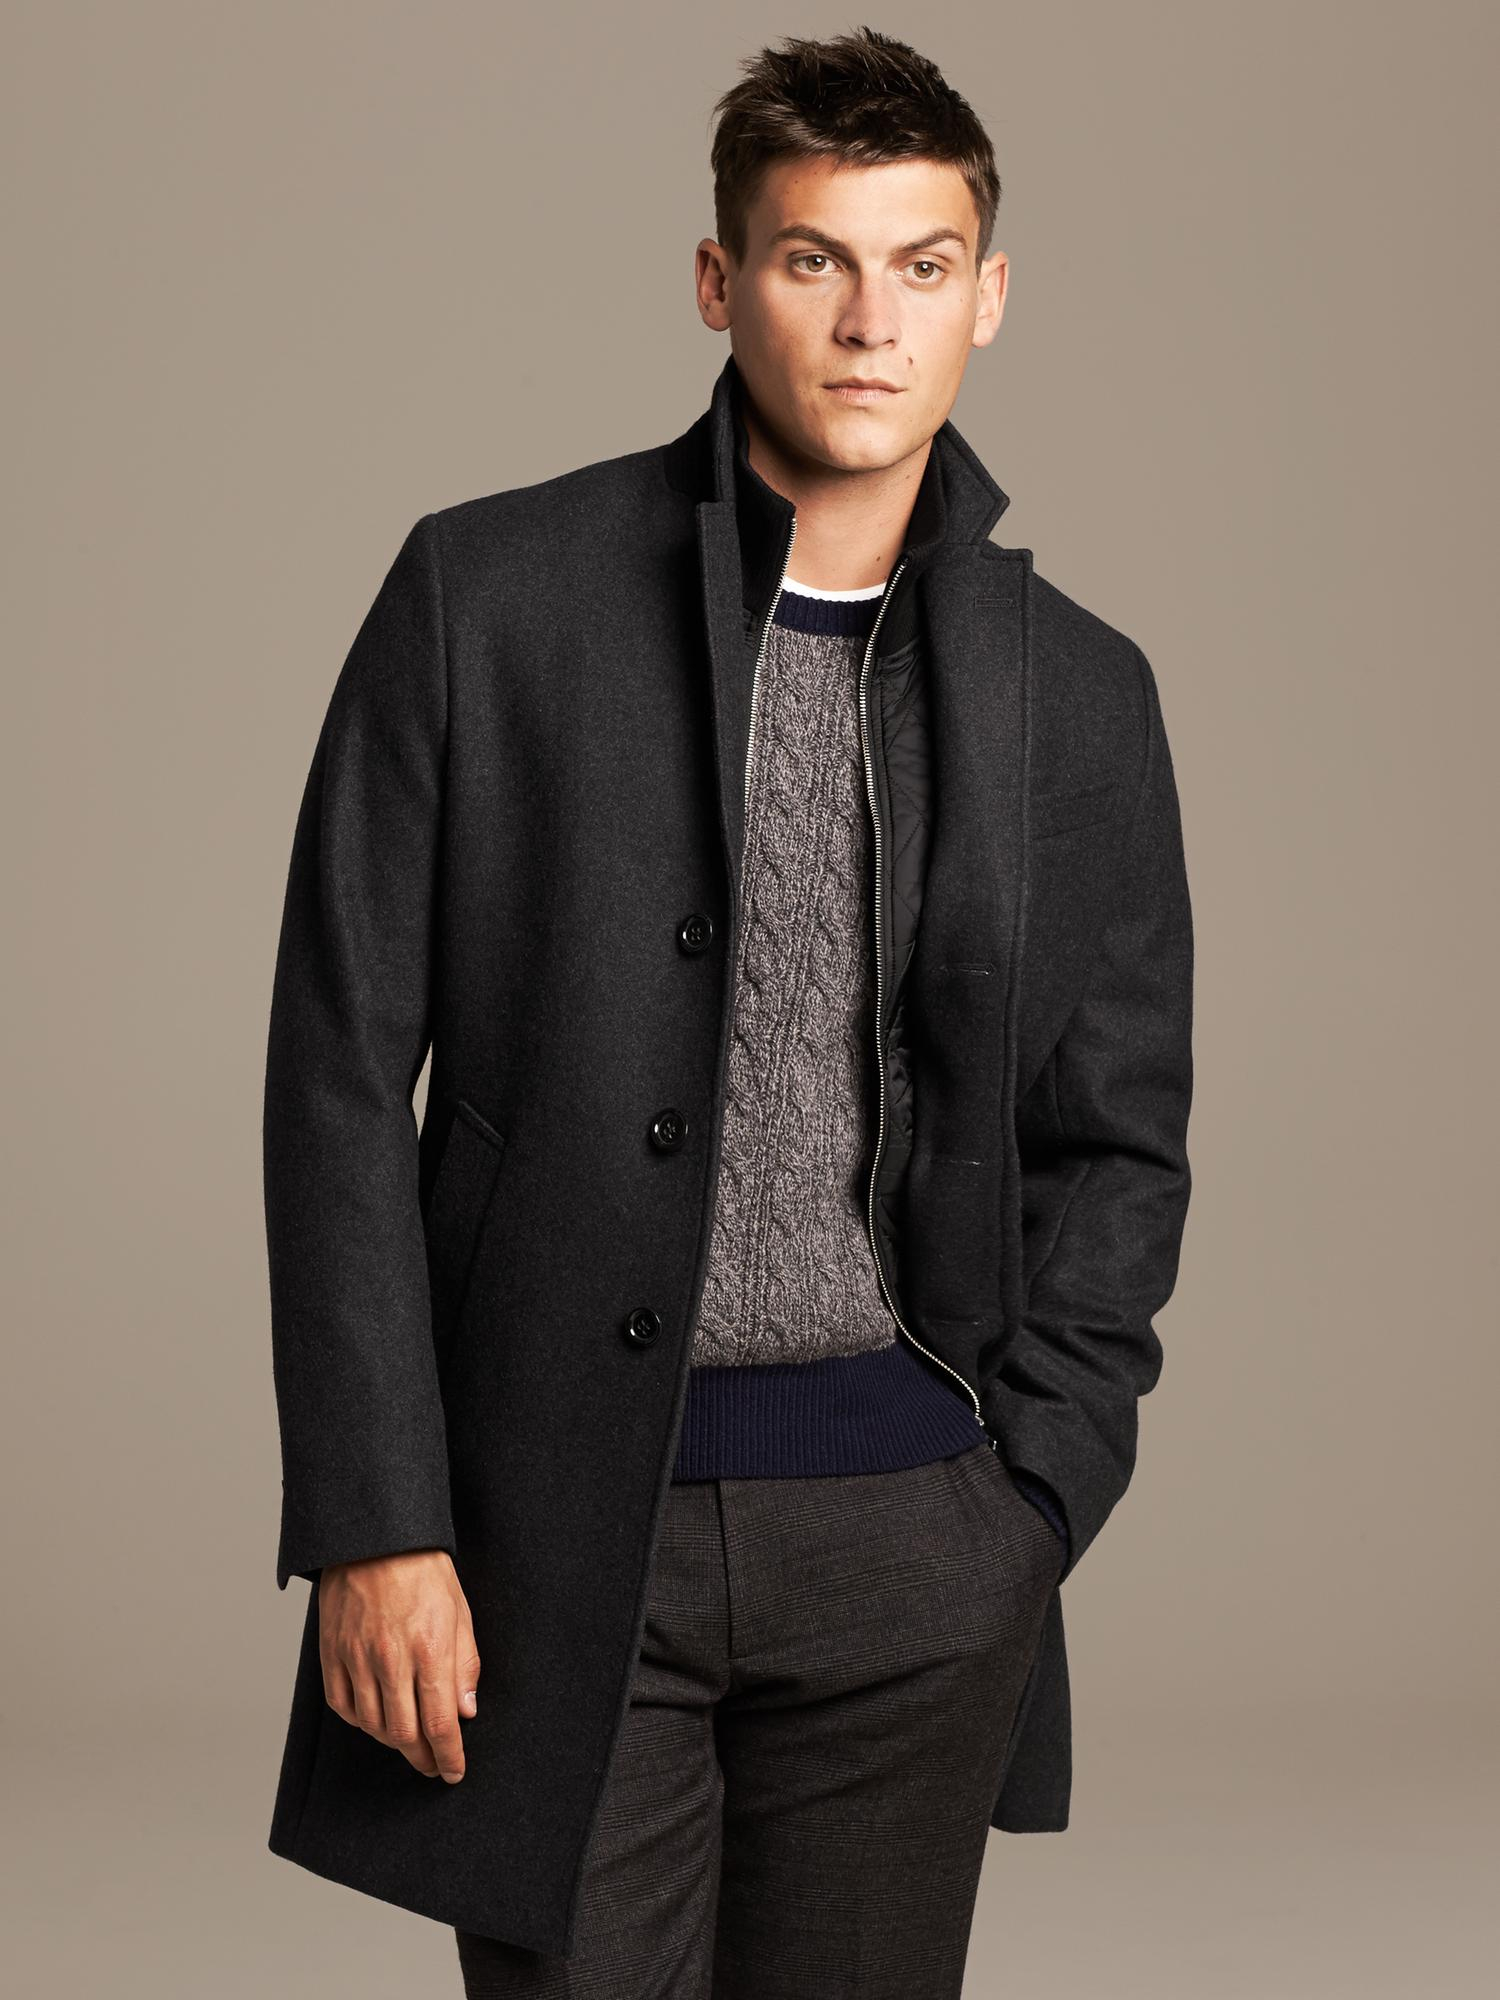 Lyst Banana Republic Layered Topcoat In Gray For Men